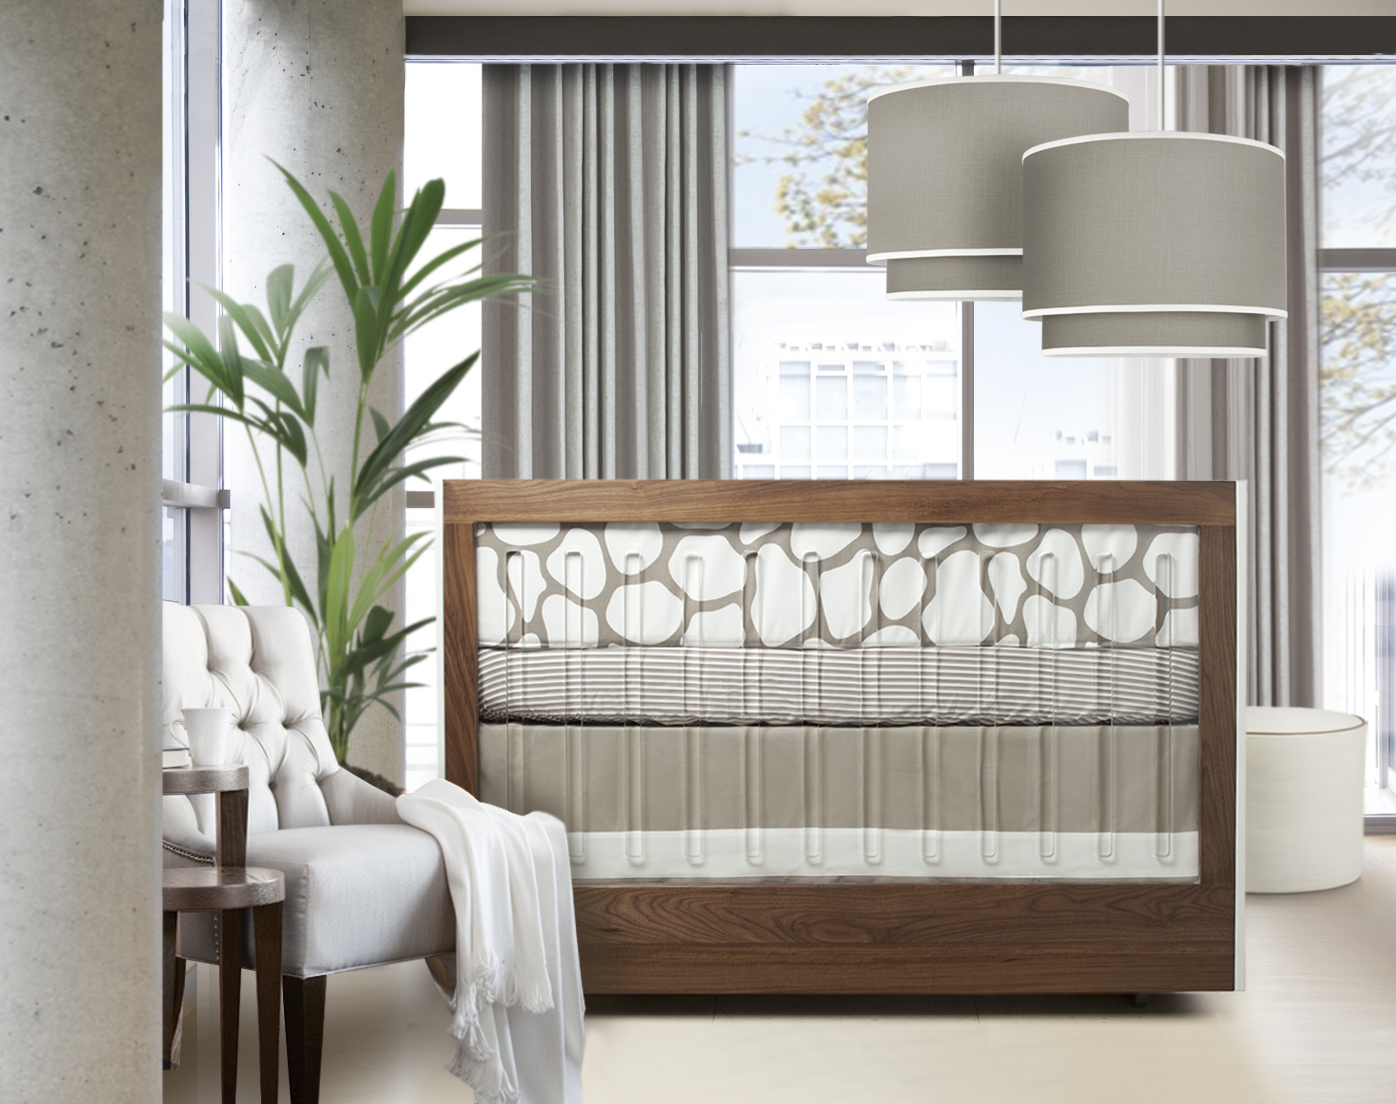 Modern Nursery Featuring a Taupe Color